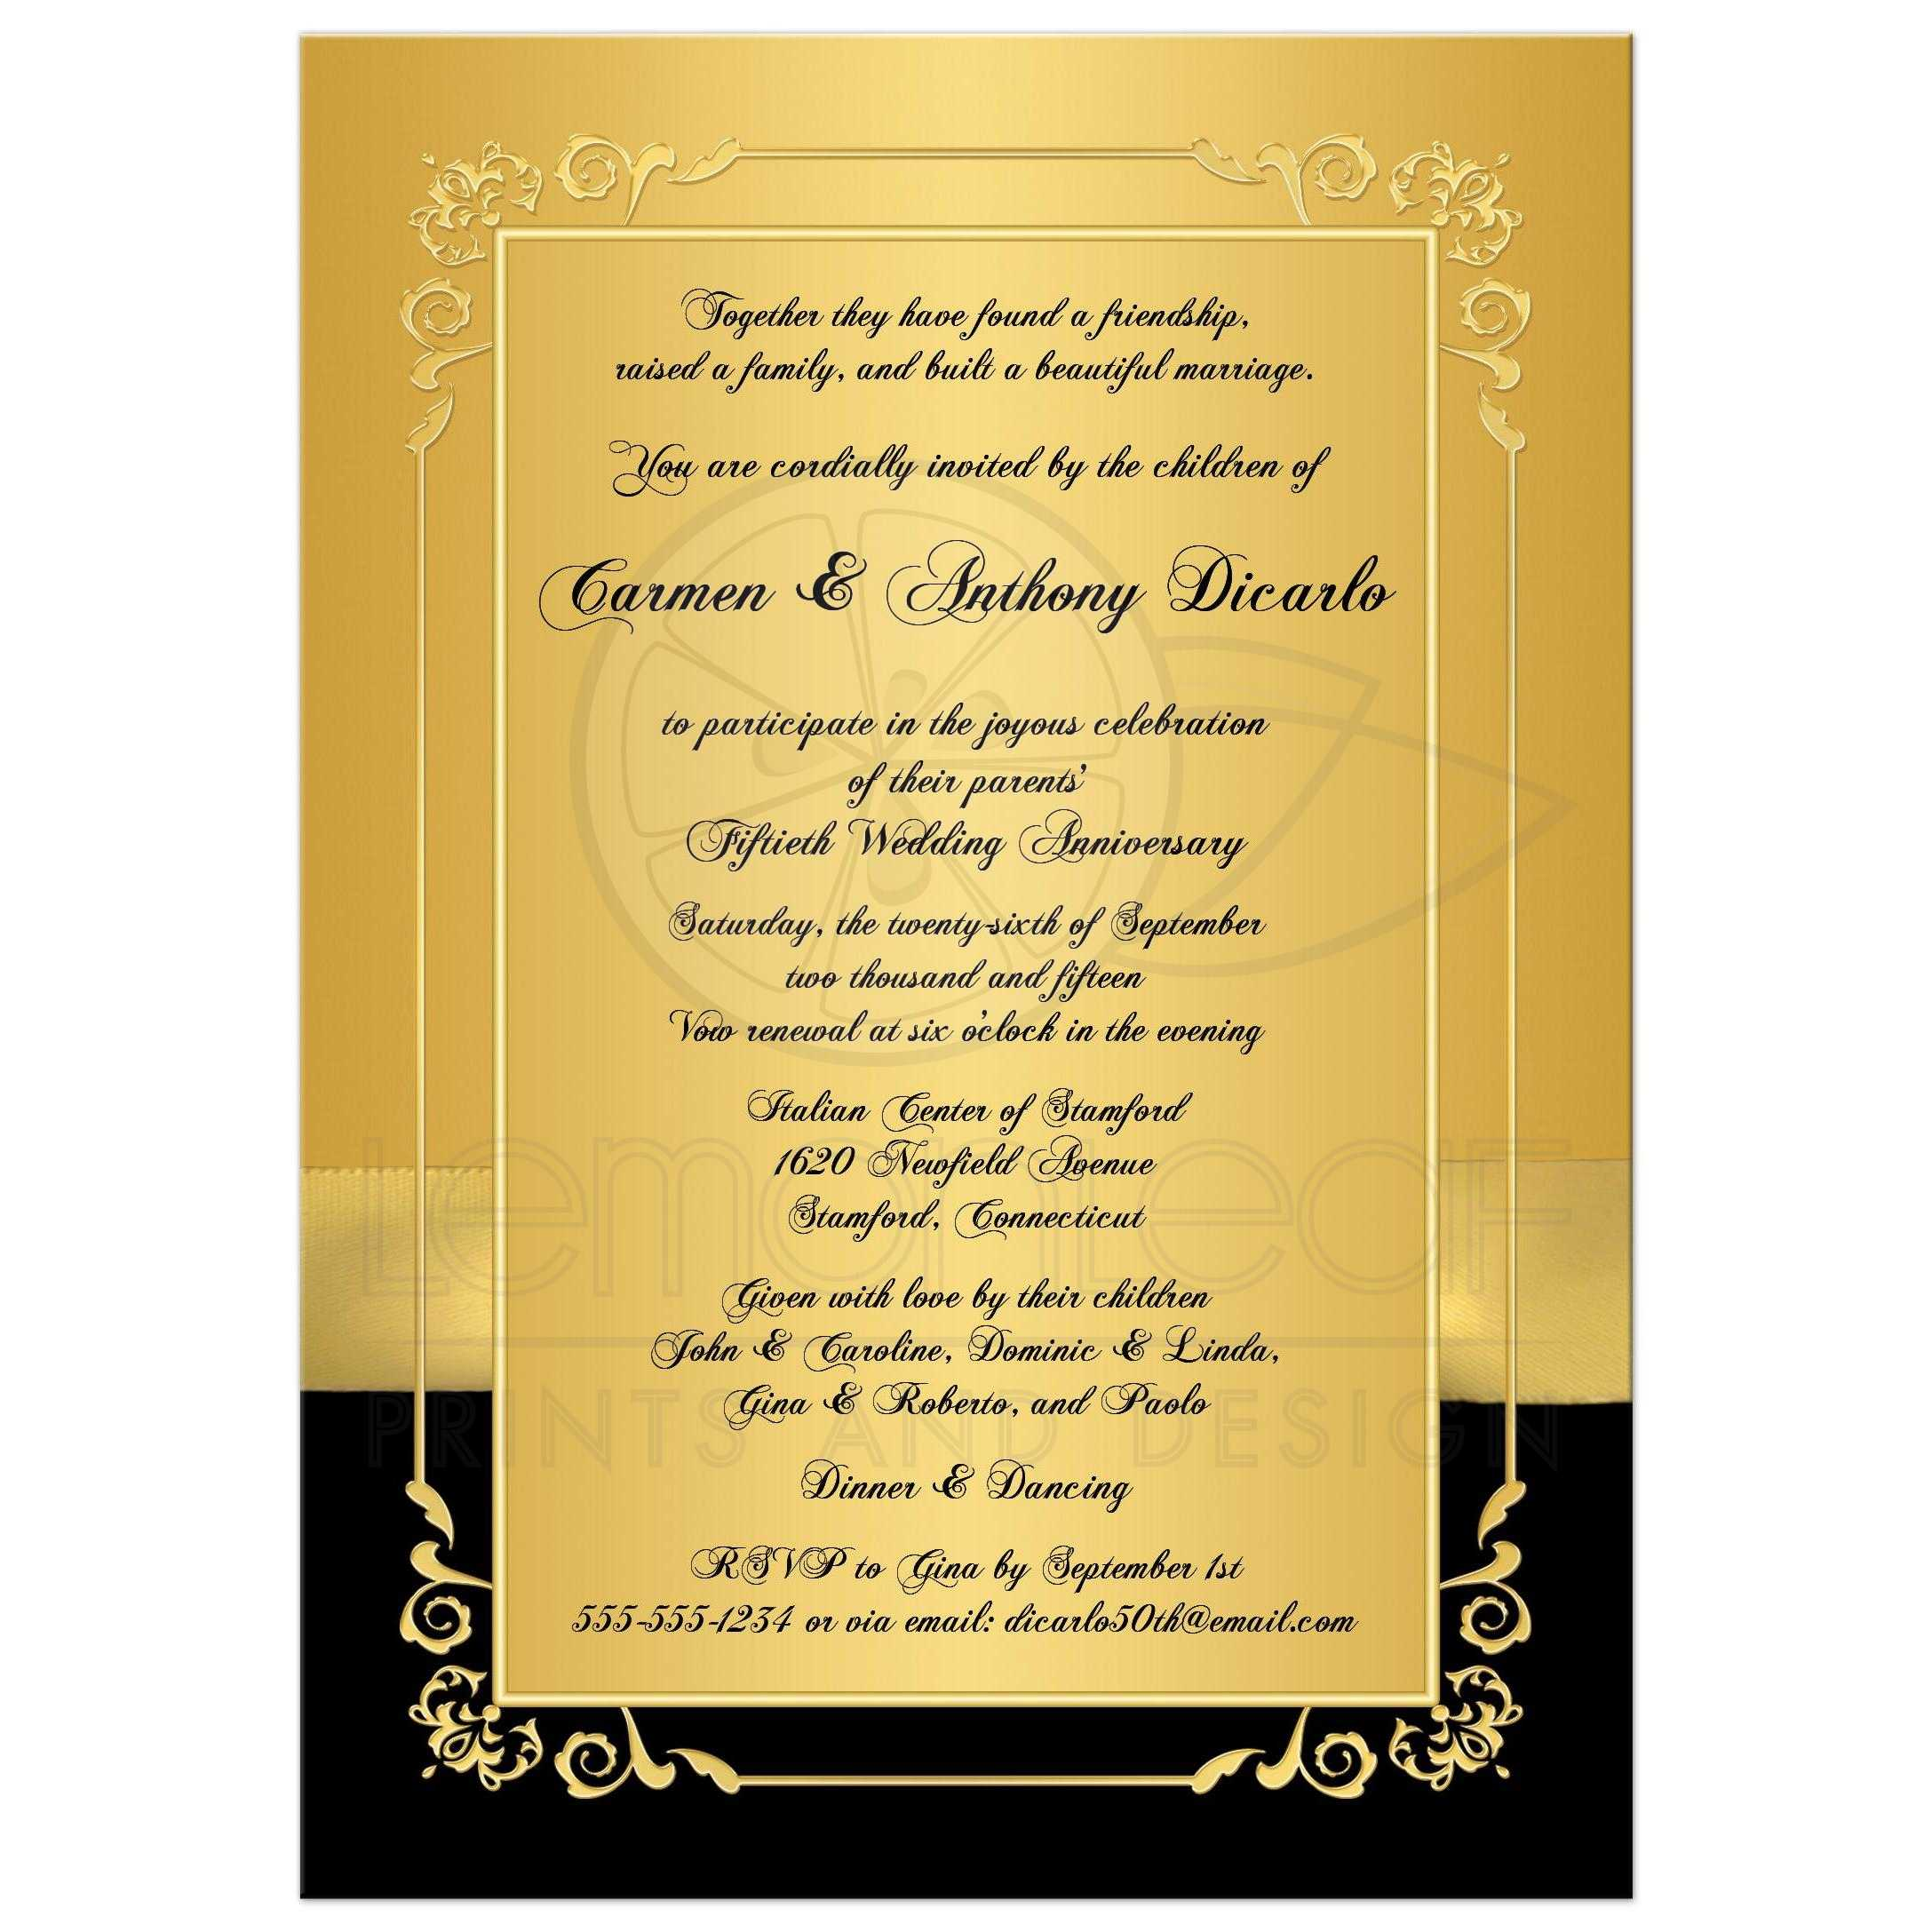 50th Wedding Anniversary Invitation Black And Gold